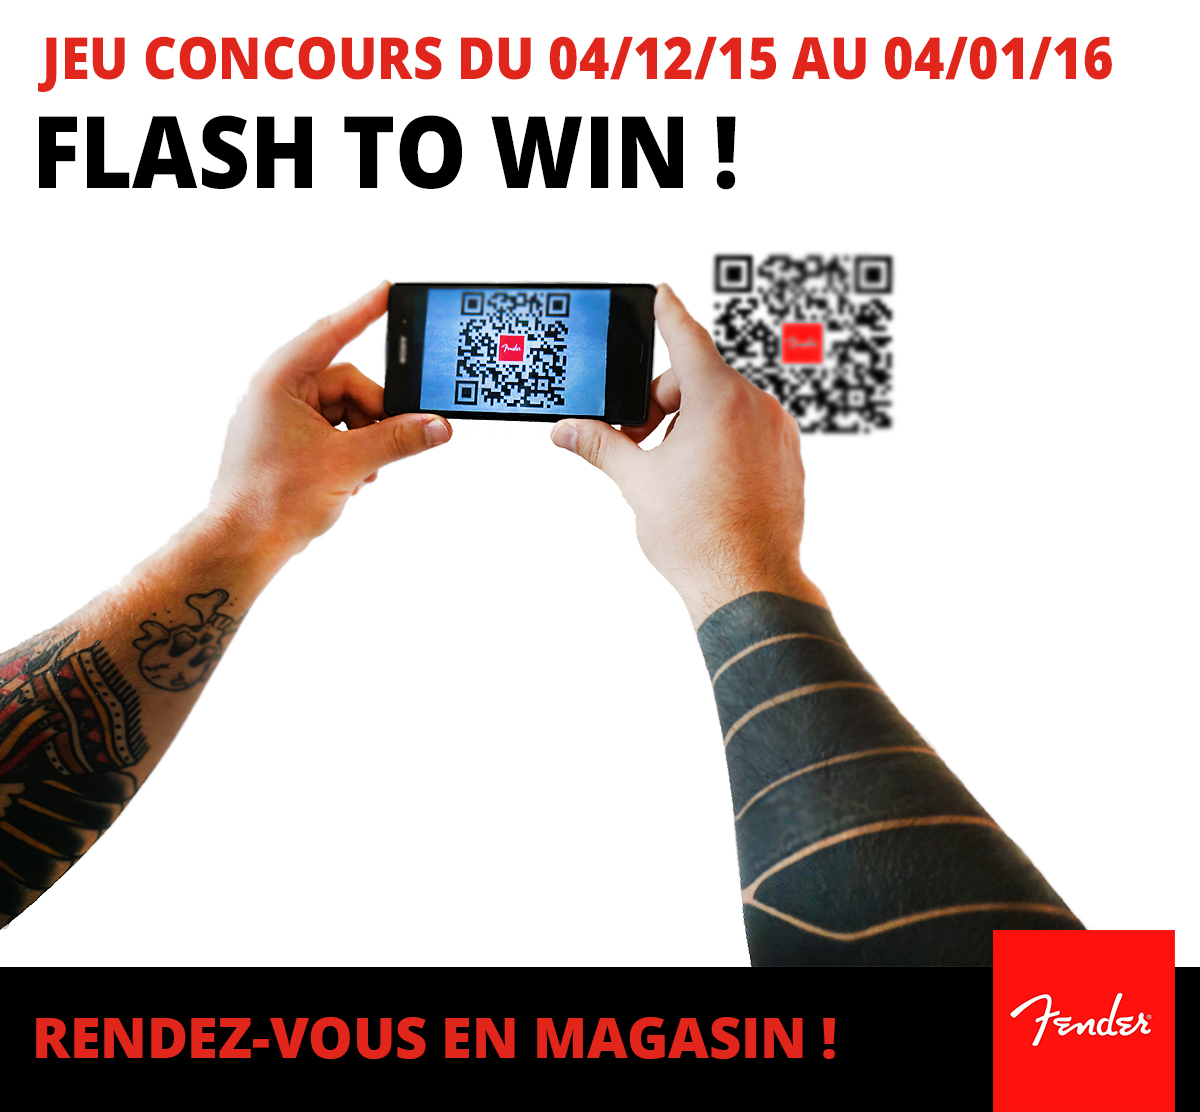 Fender Flash to Win Jeu Concours - Fallone Music